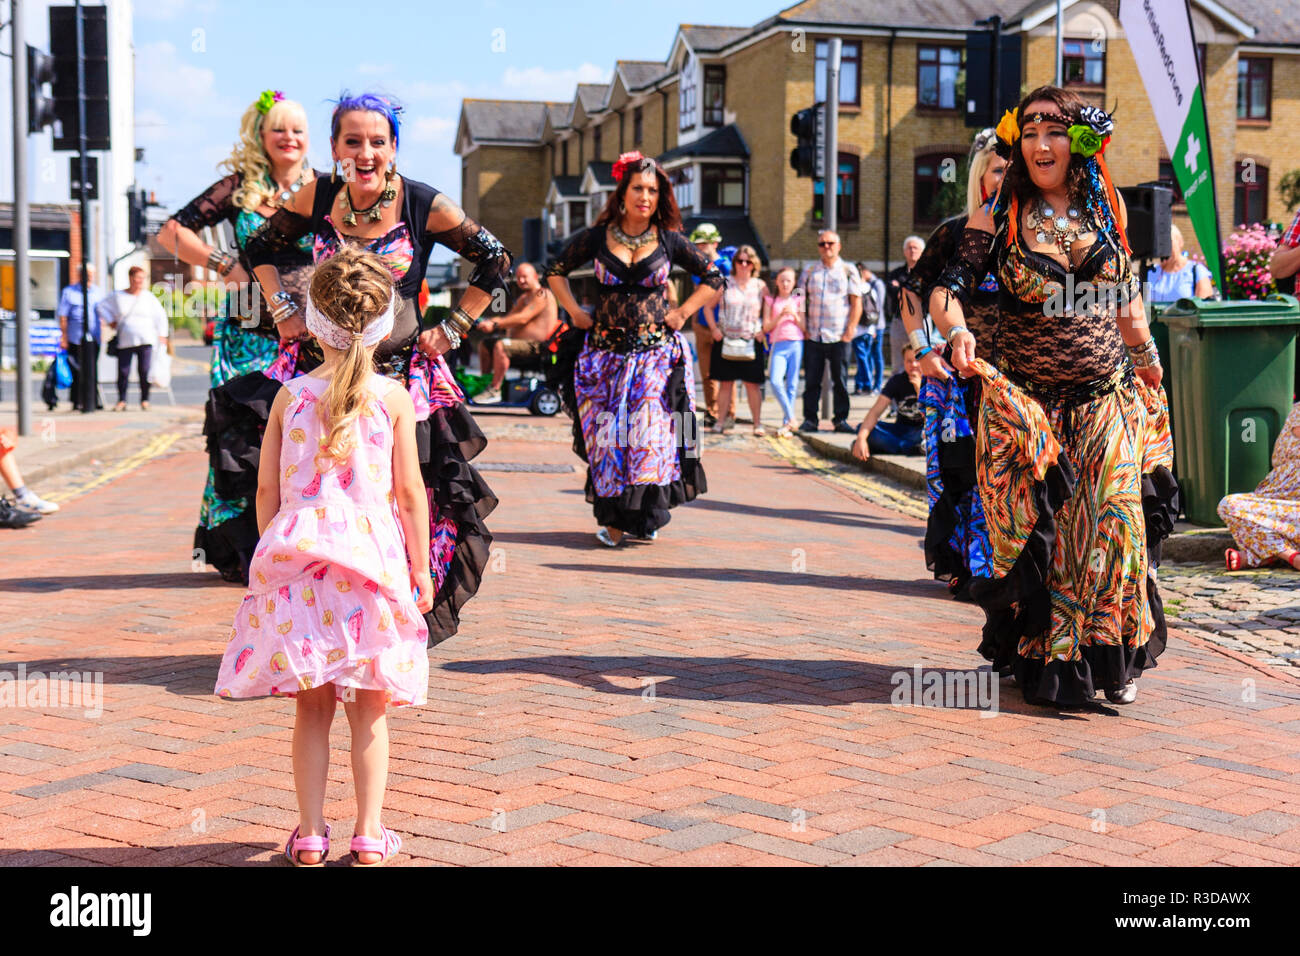 Faversham hop festival. Anaconda Dance group belly dancing in town street with little girl standing in front of them determined not to let them pass. - Stock Image